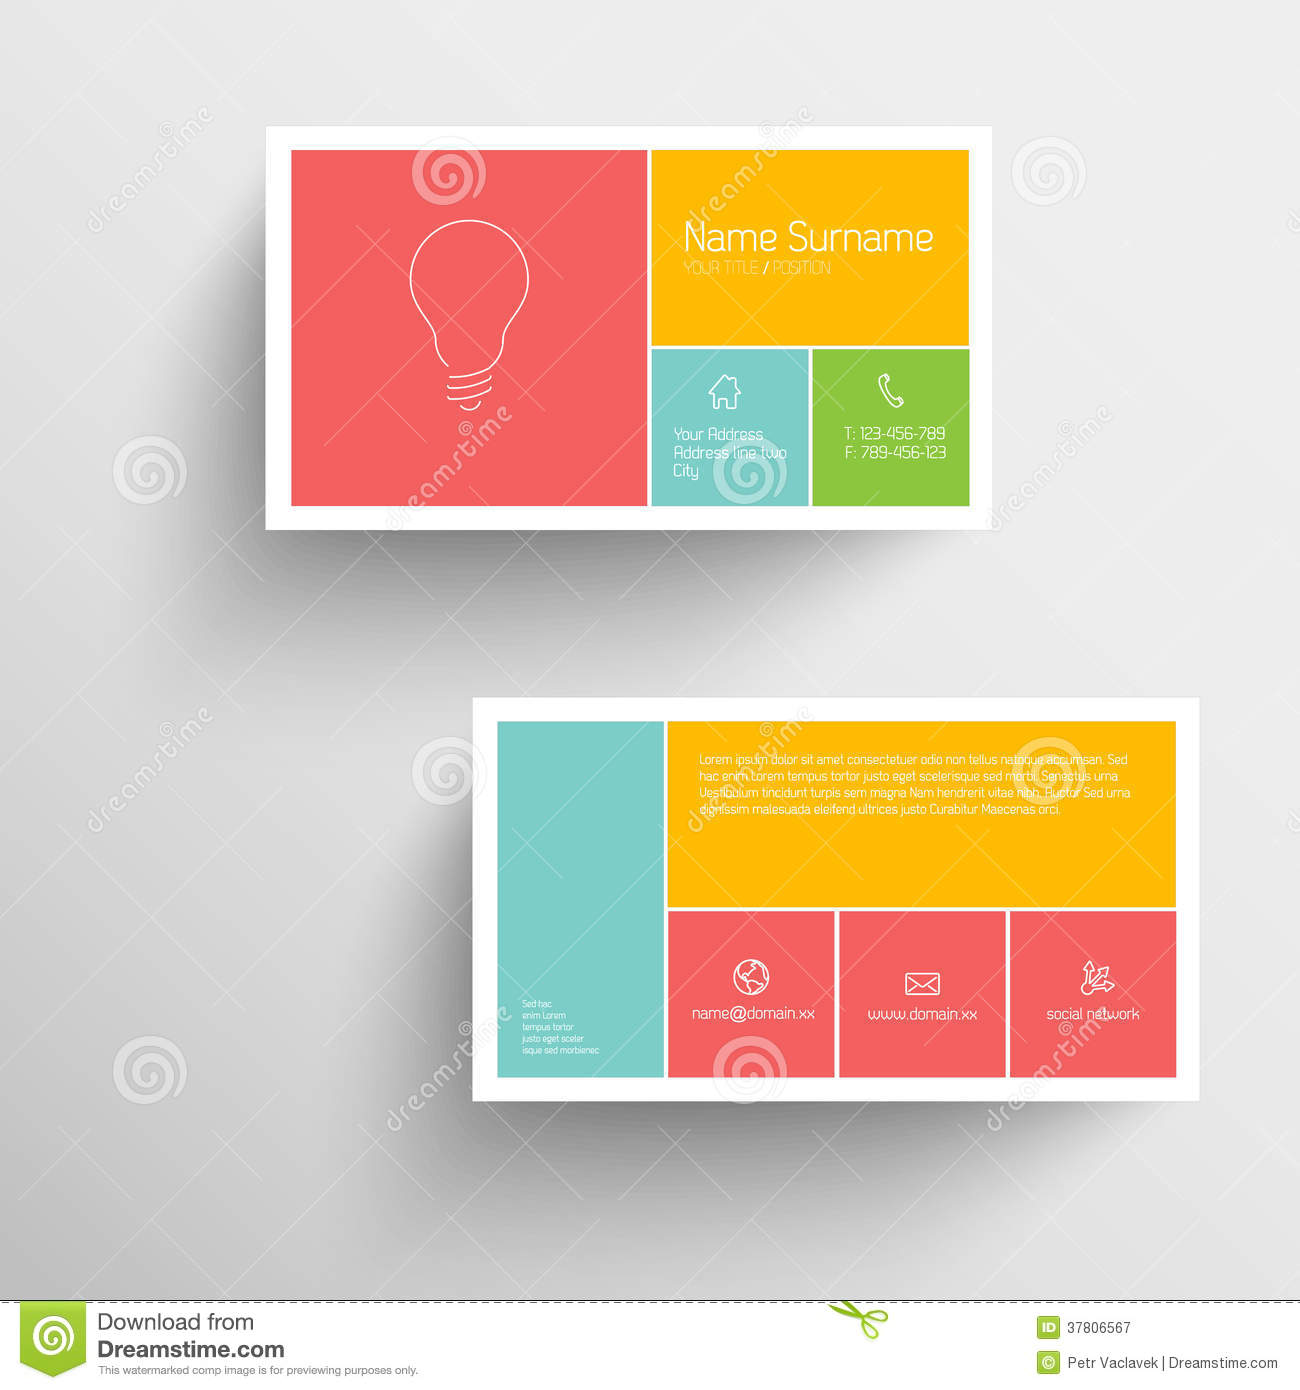 Modern business card template with flat mobile user interface stock modern business card template with flat mobile user interface accmission Gallery